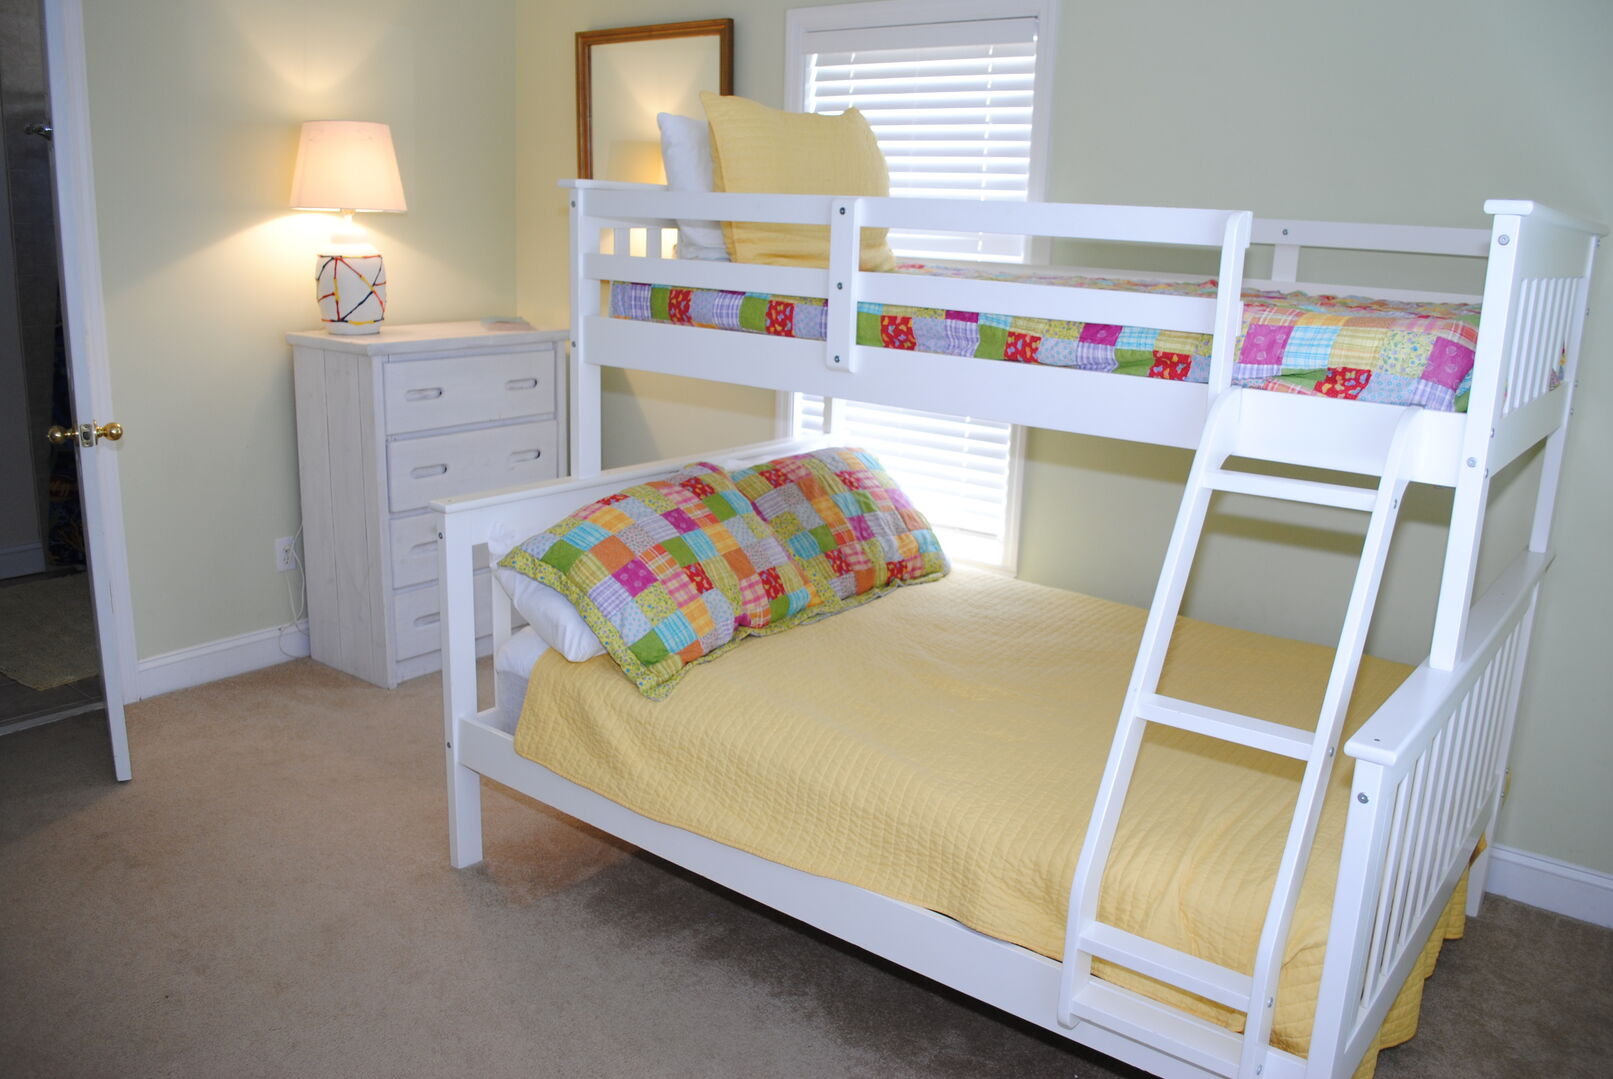 2 Sets of Bunk Beds (1 Full, 3 Twins) - Second Floor